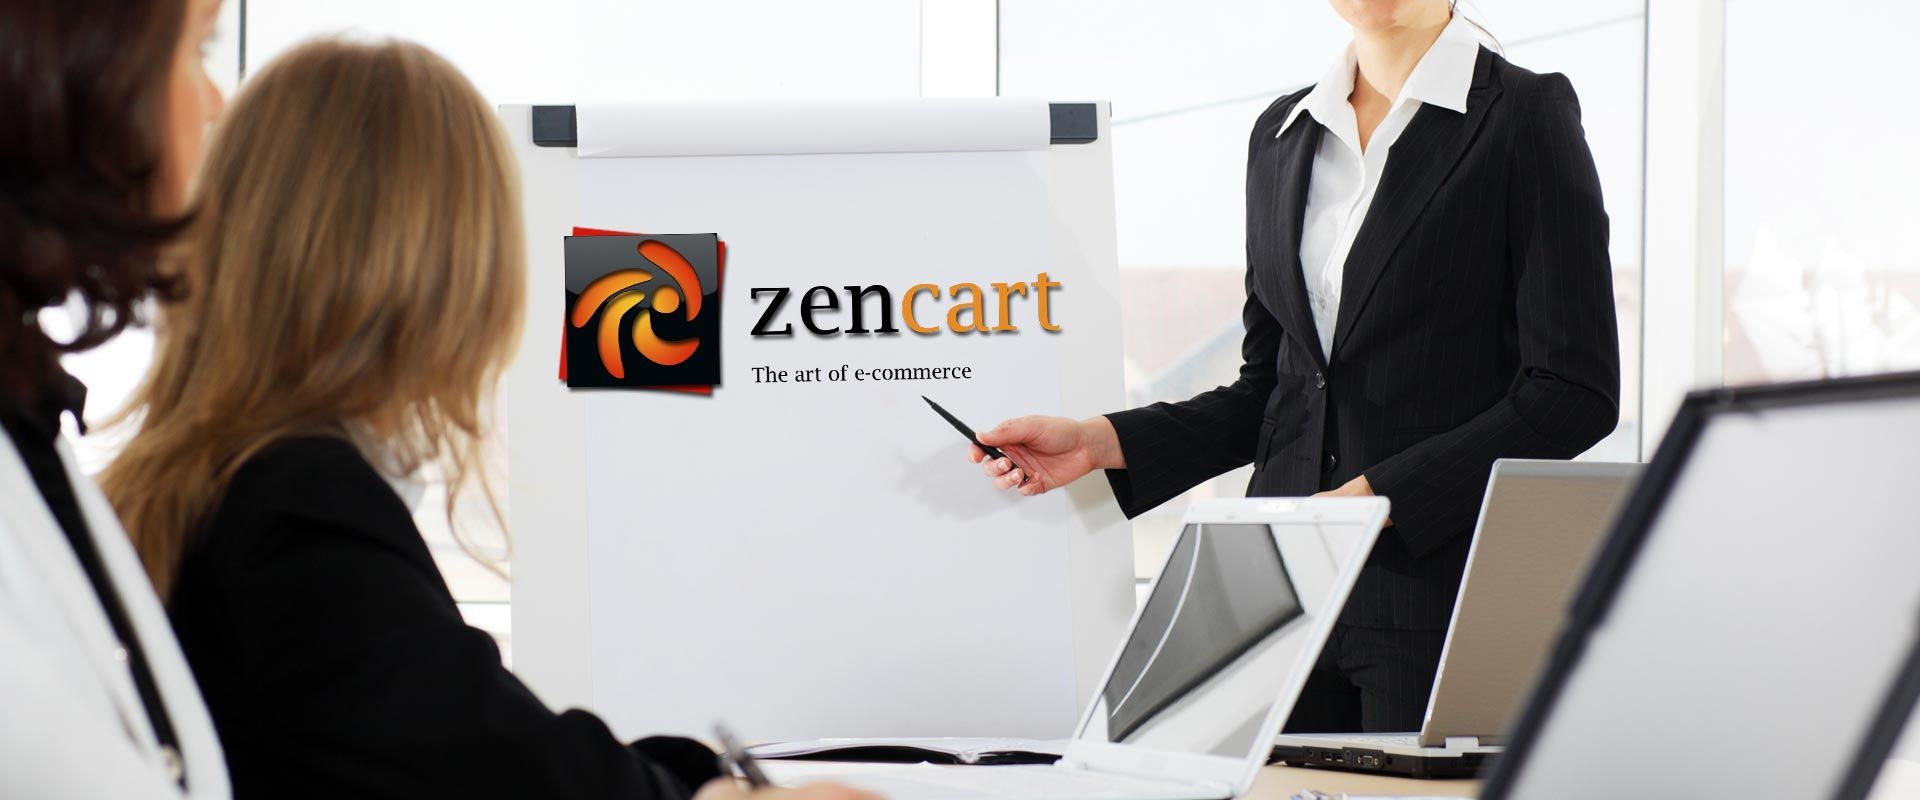 Zen Cart Consulting Company in Houston | Austin | Dallas | San Antonio | Atlanta